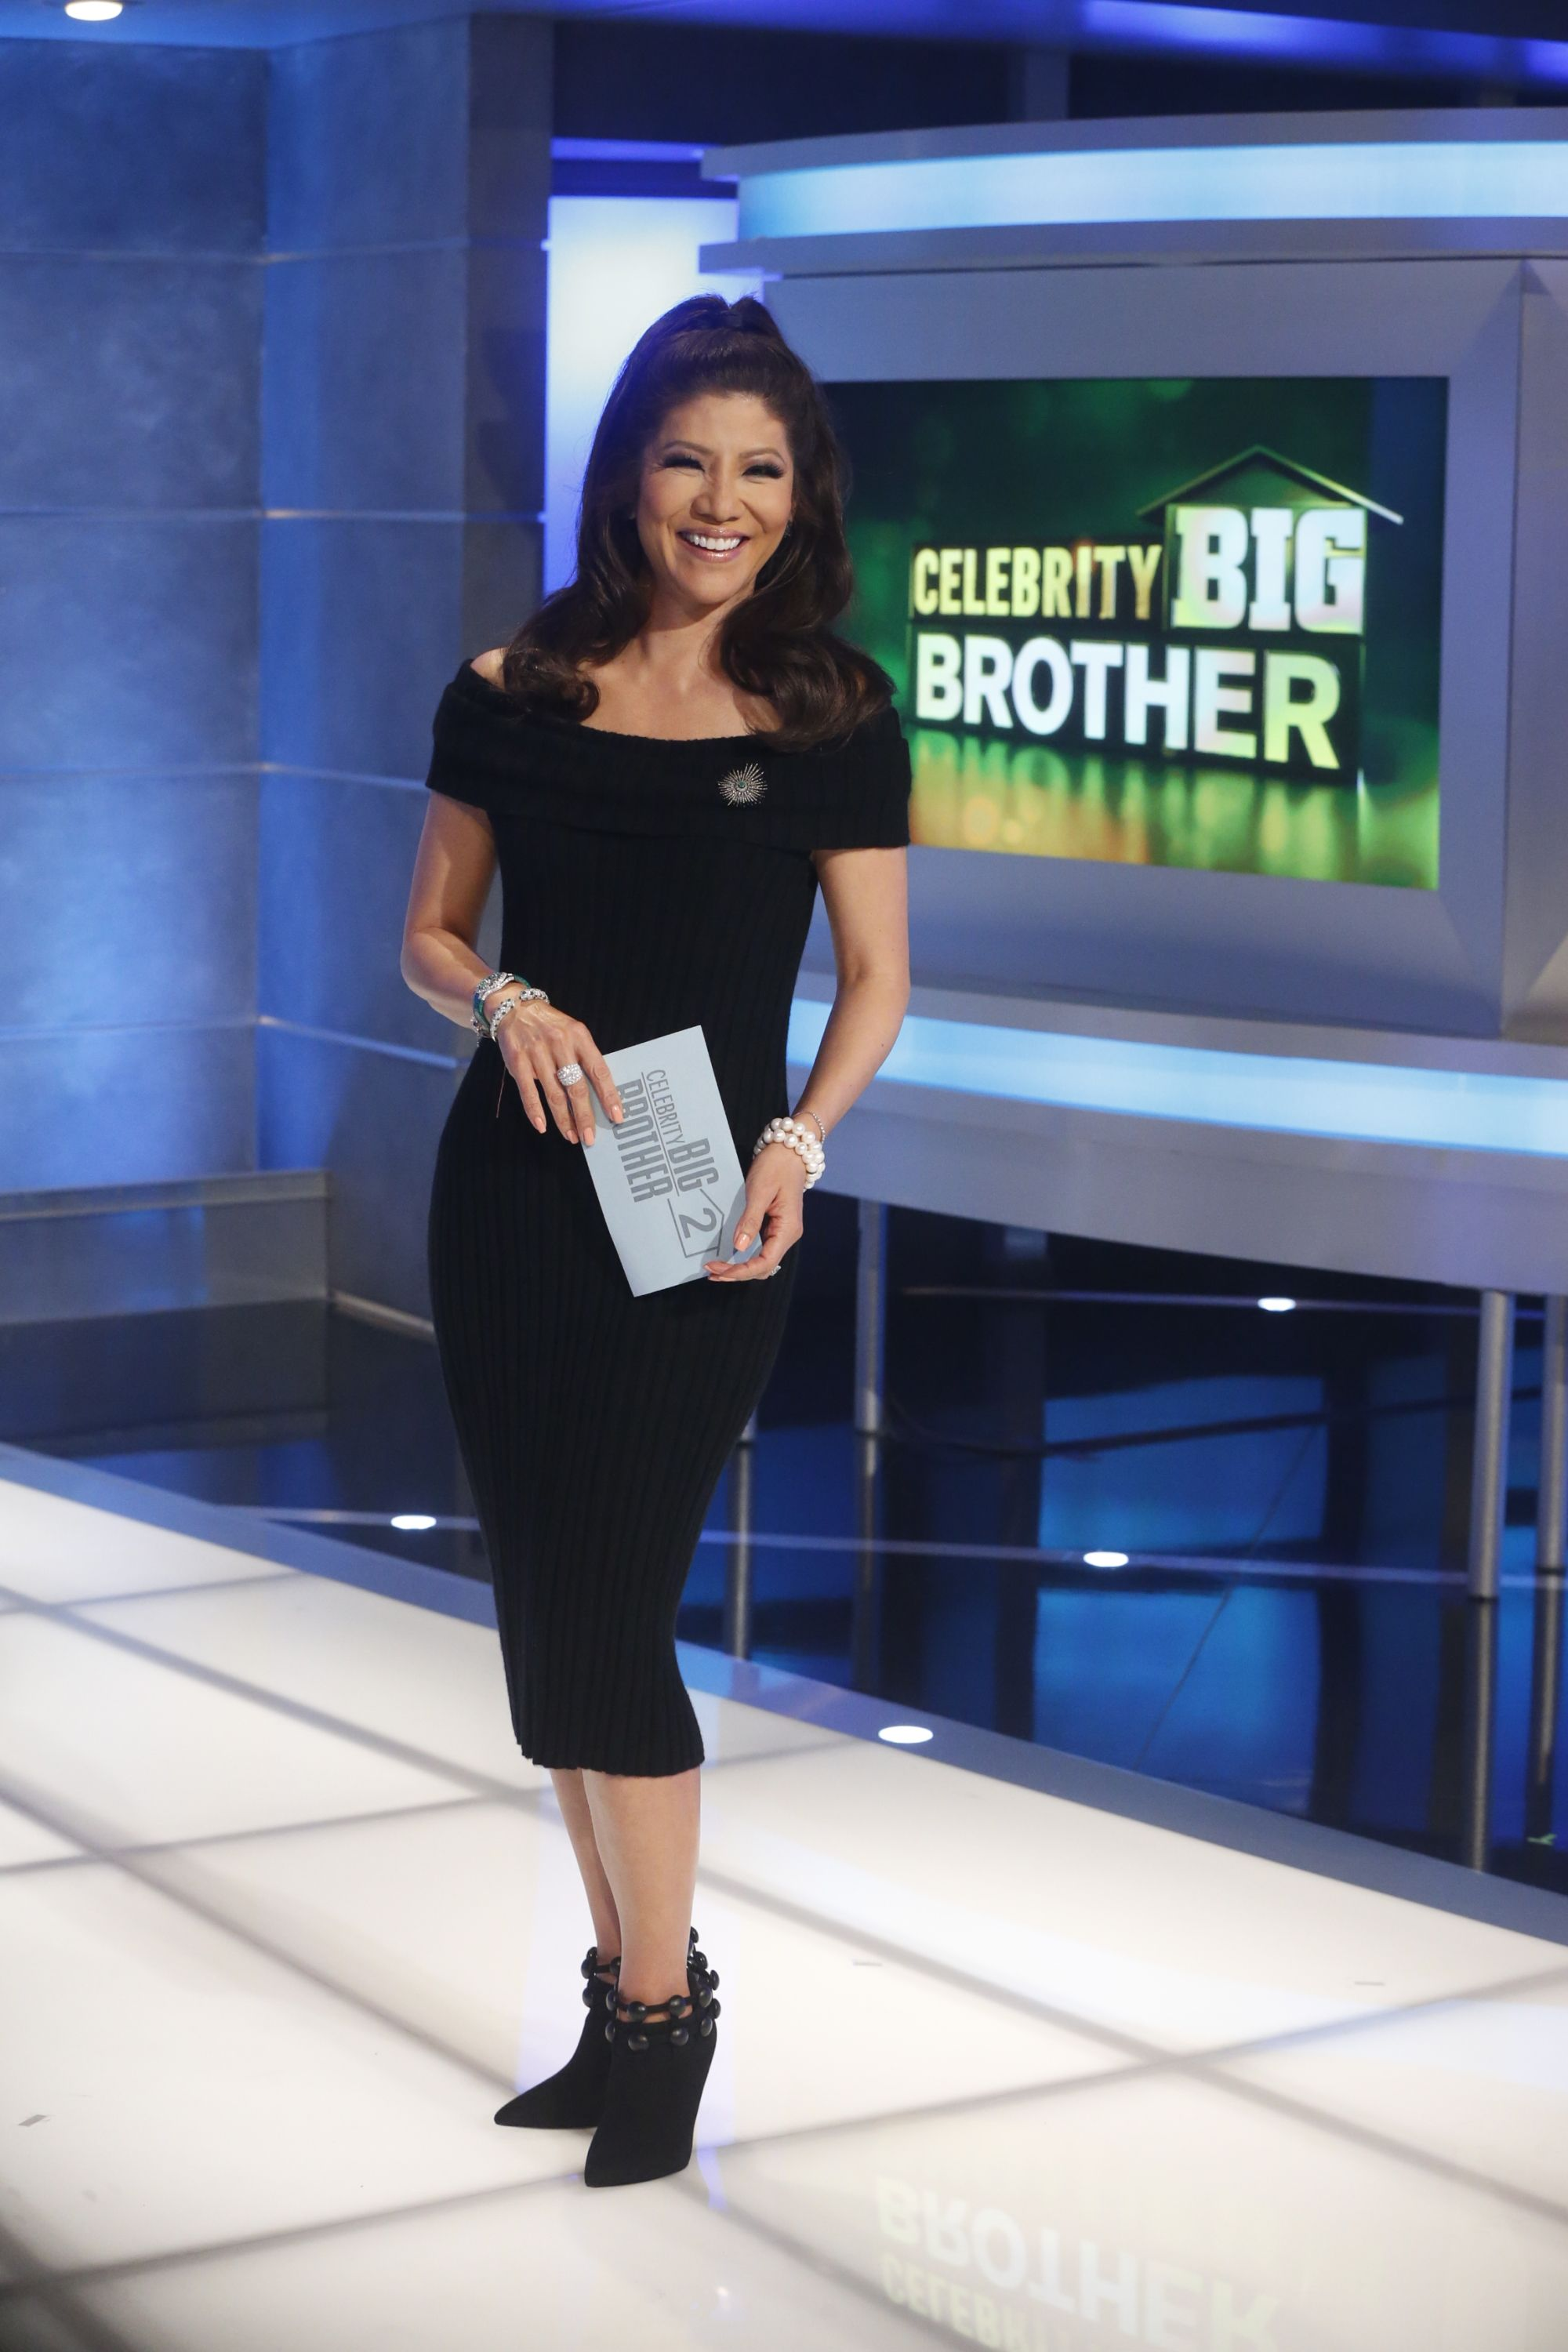 Watch celebrity big brother  episode 4